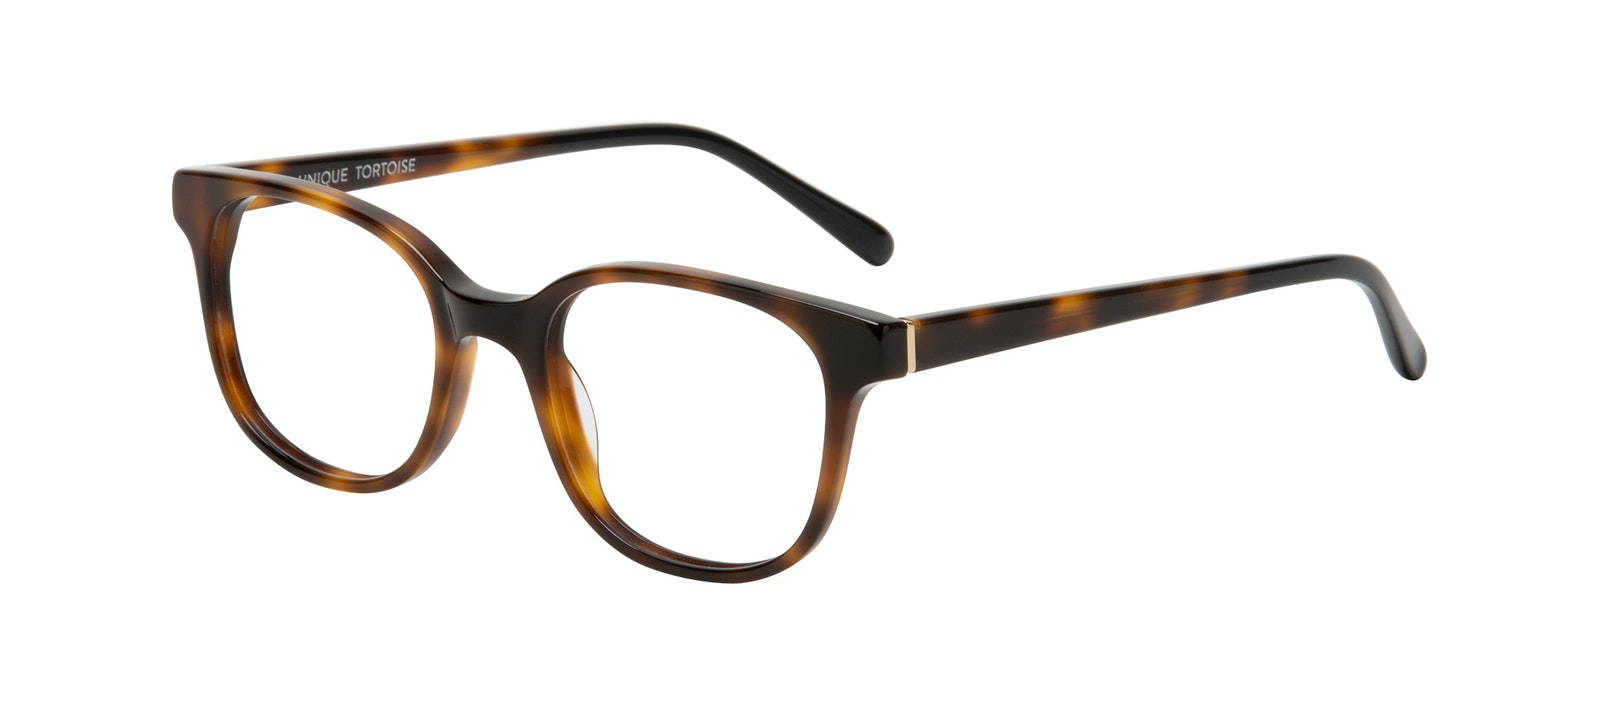 Affordable Fashion Glasses Square Eyeglasses Women Unique Tortoise Tilt